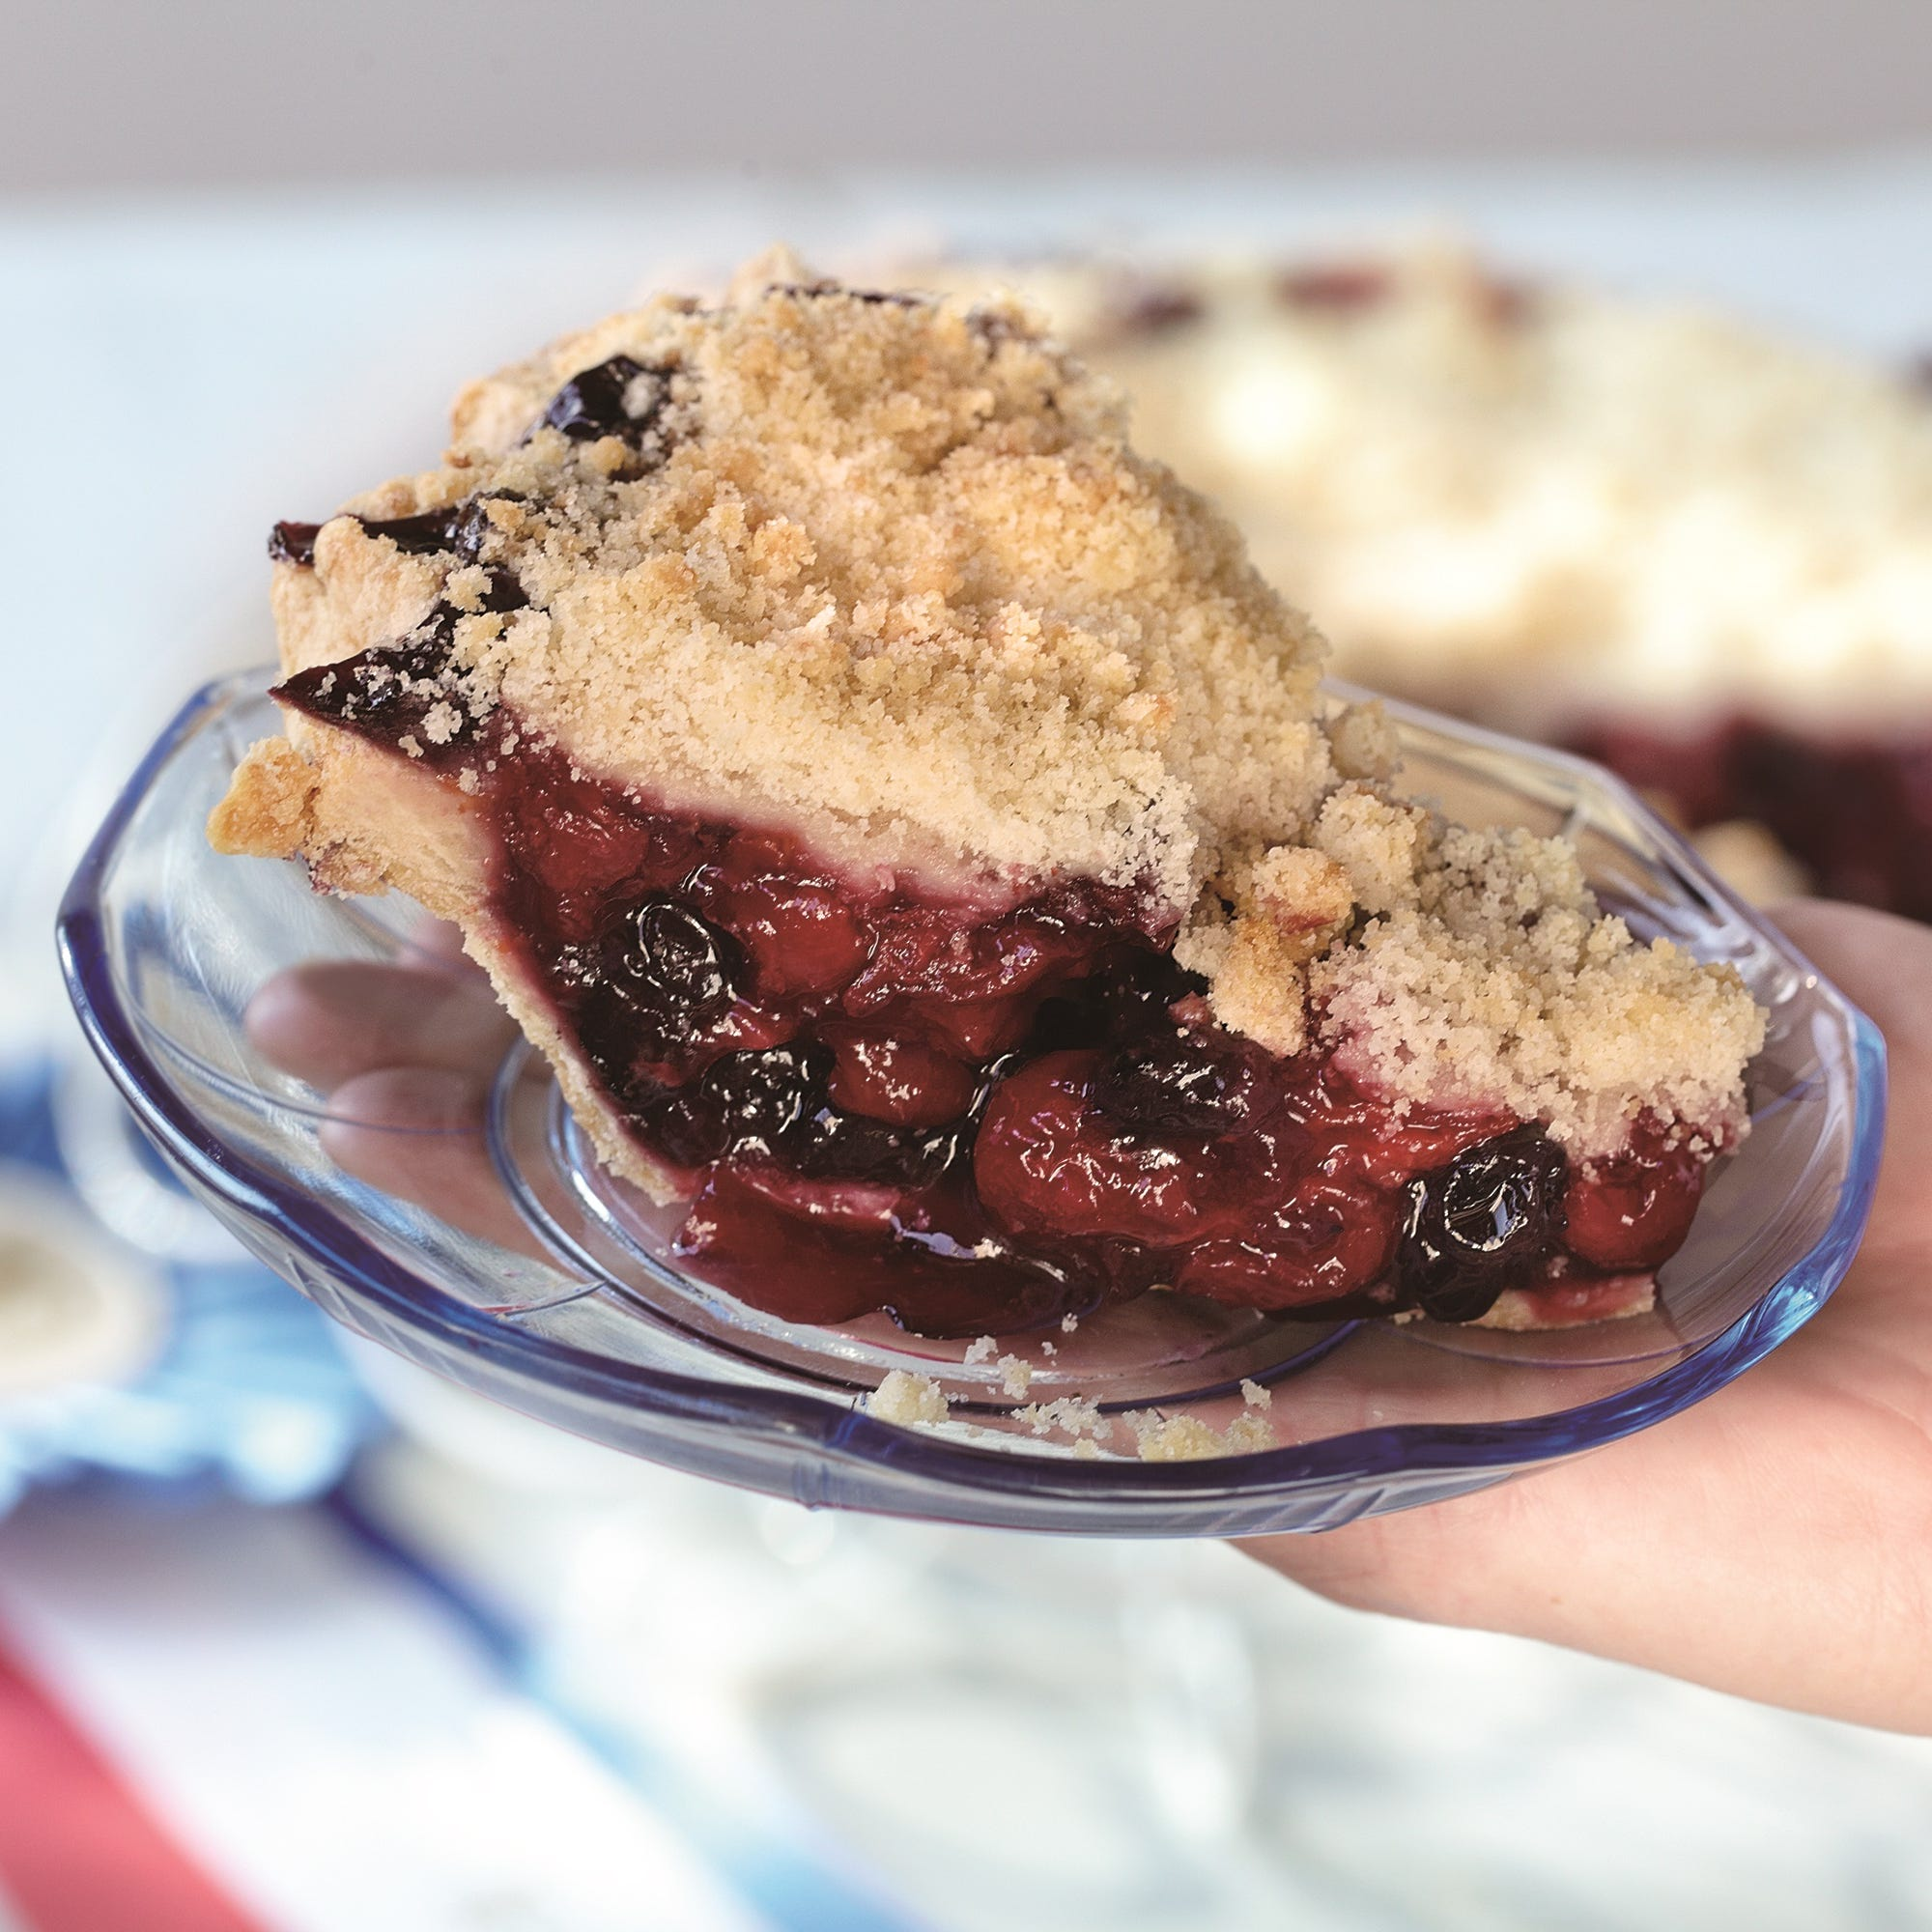 The retro-styled Sweetie-licious Bakery Café in DeWitt, Michigan, serves winners like the Cherry Cherry Berry pie, with layers of fresh Michigan cherries, dry cherries and blueberries.